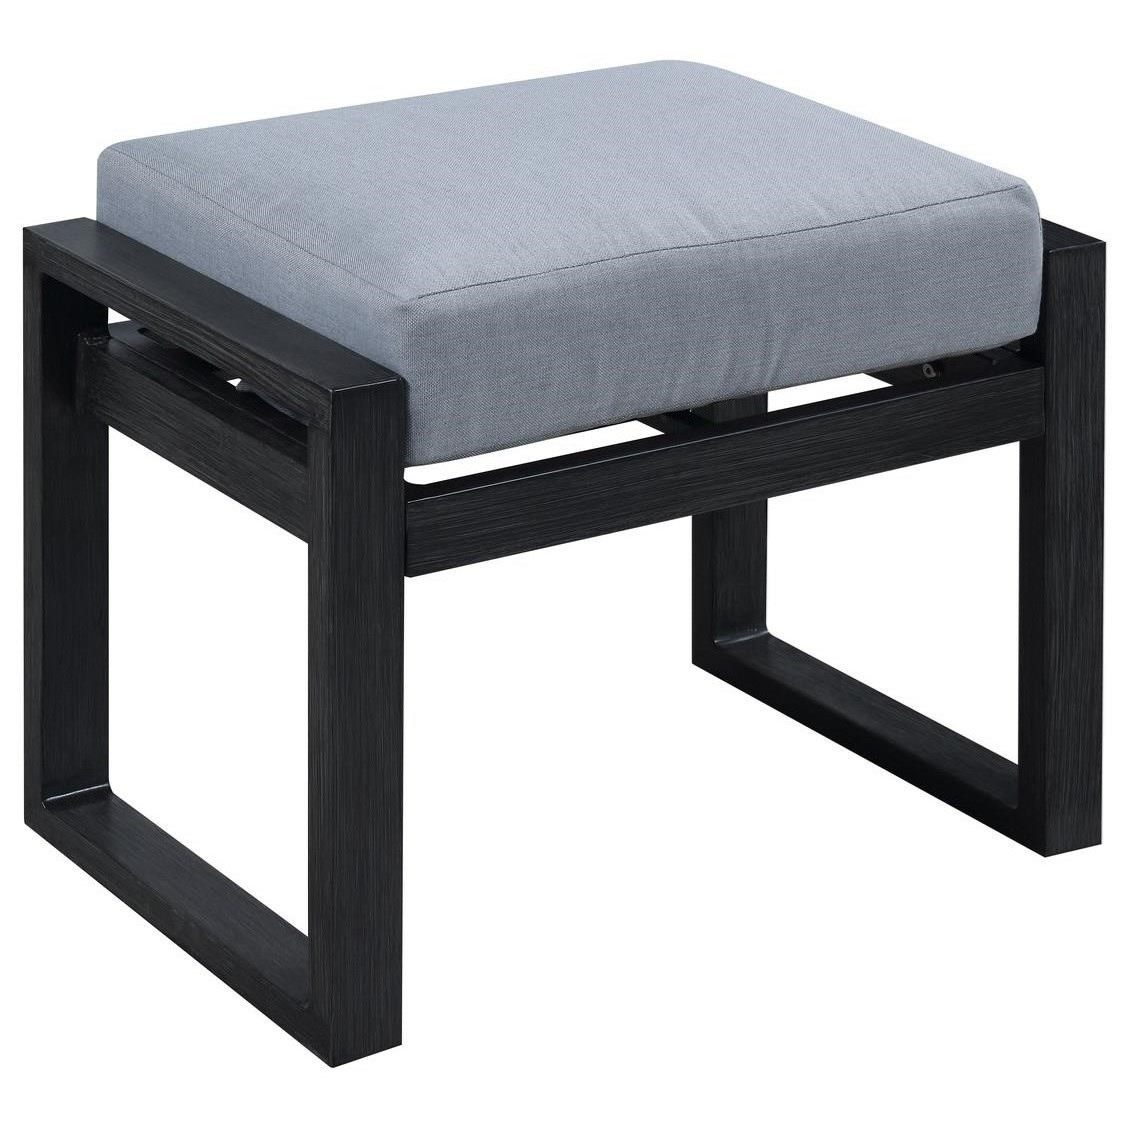 Rockport Bench by Emerald at Suburban Furniture